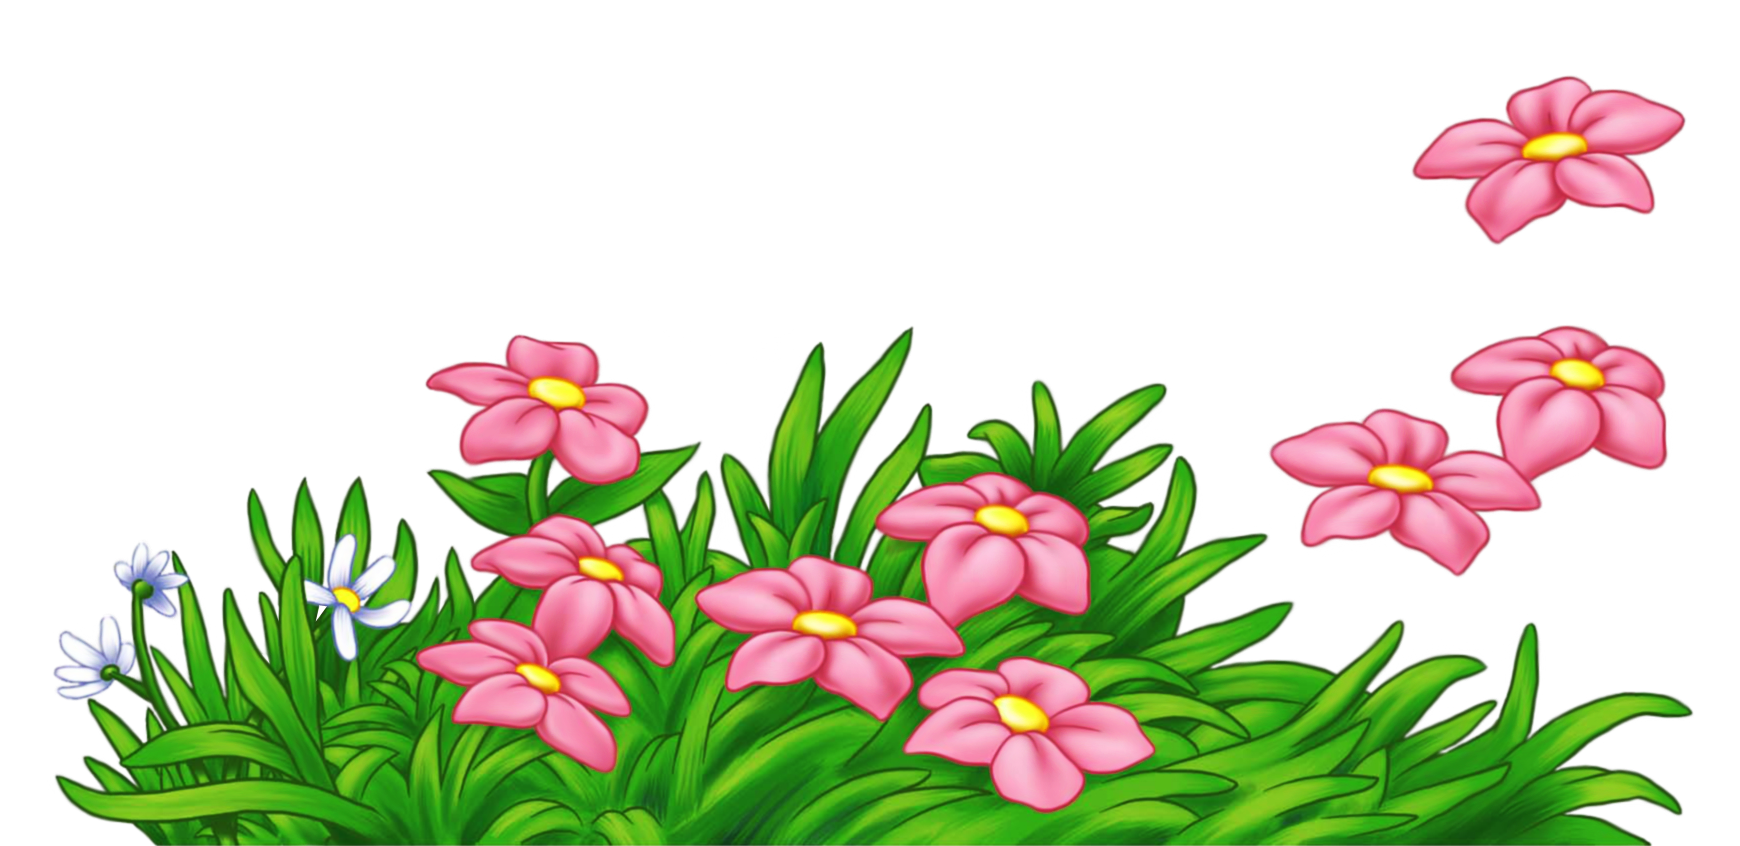 Grass with pink flowers. Flower banner clipart